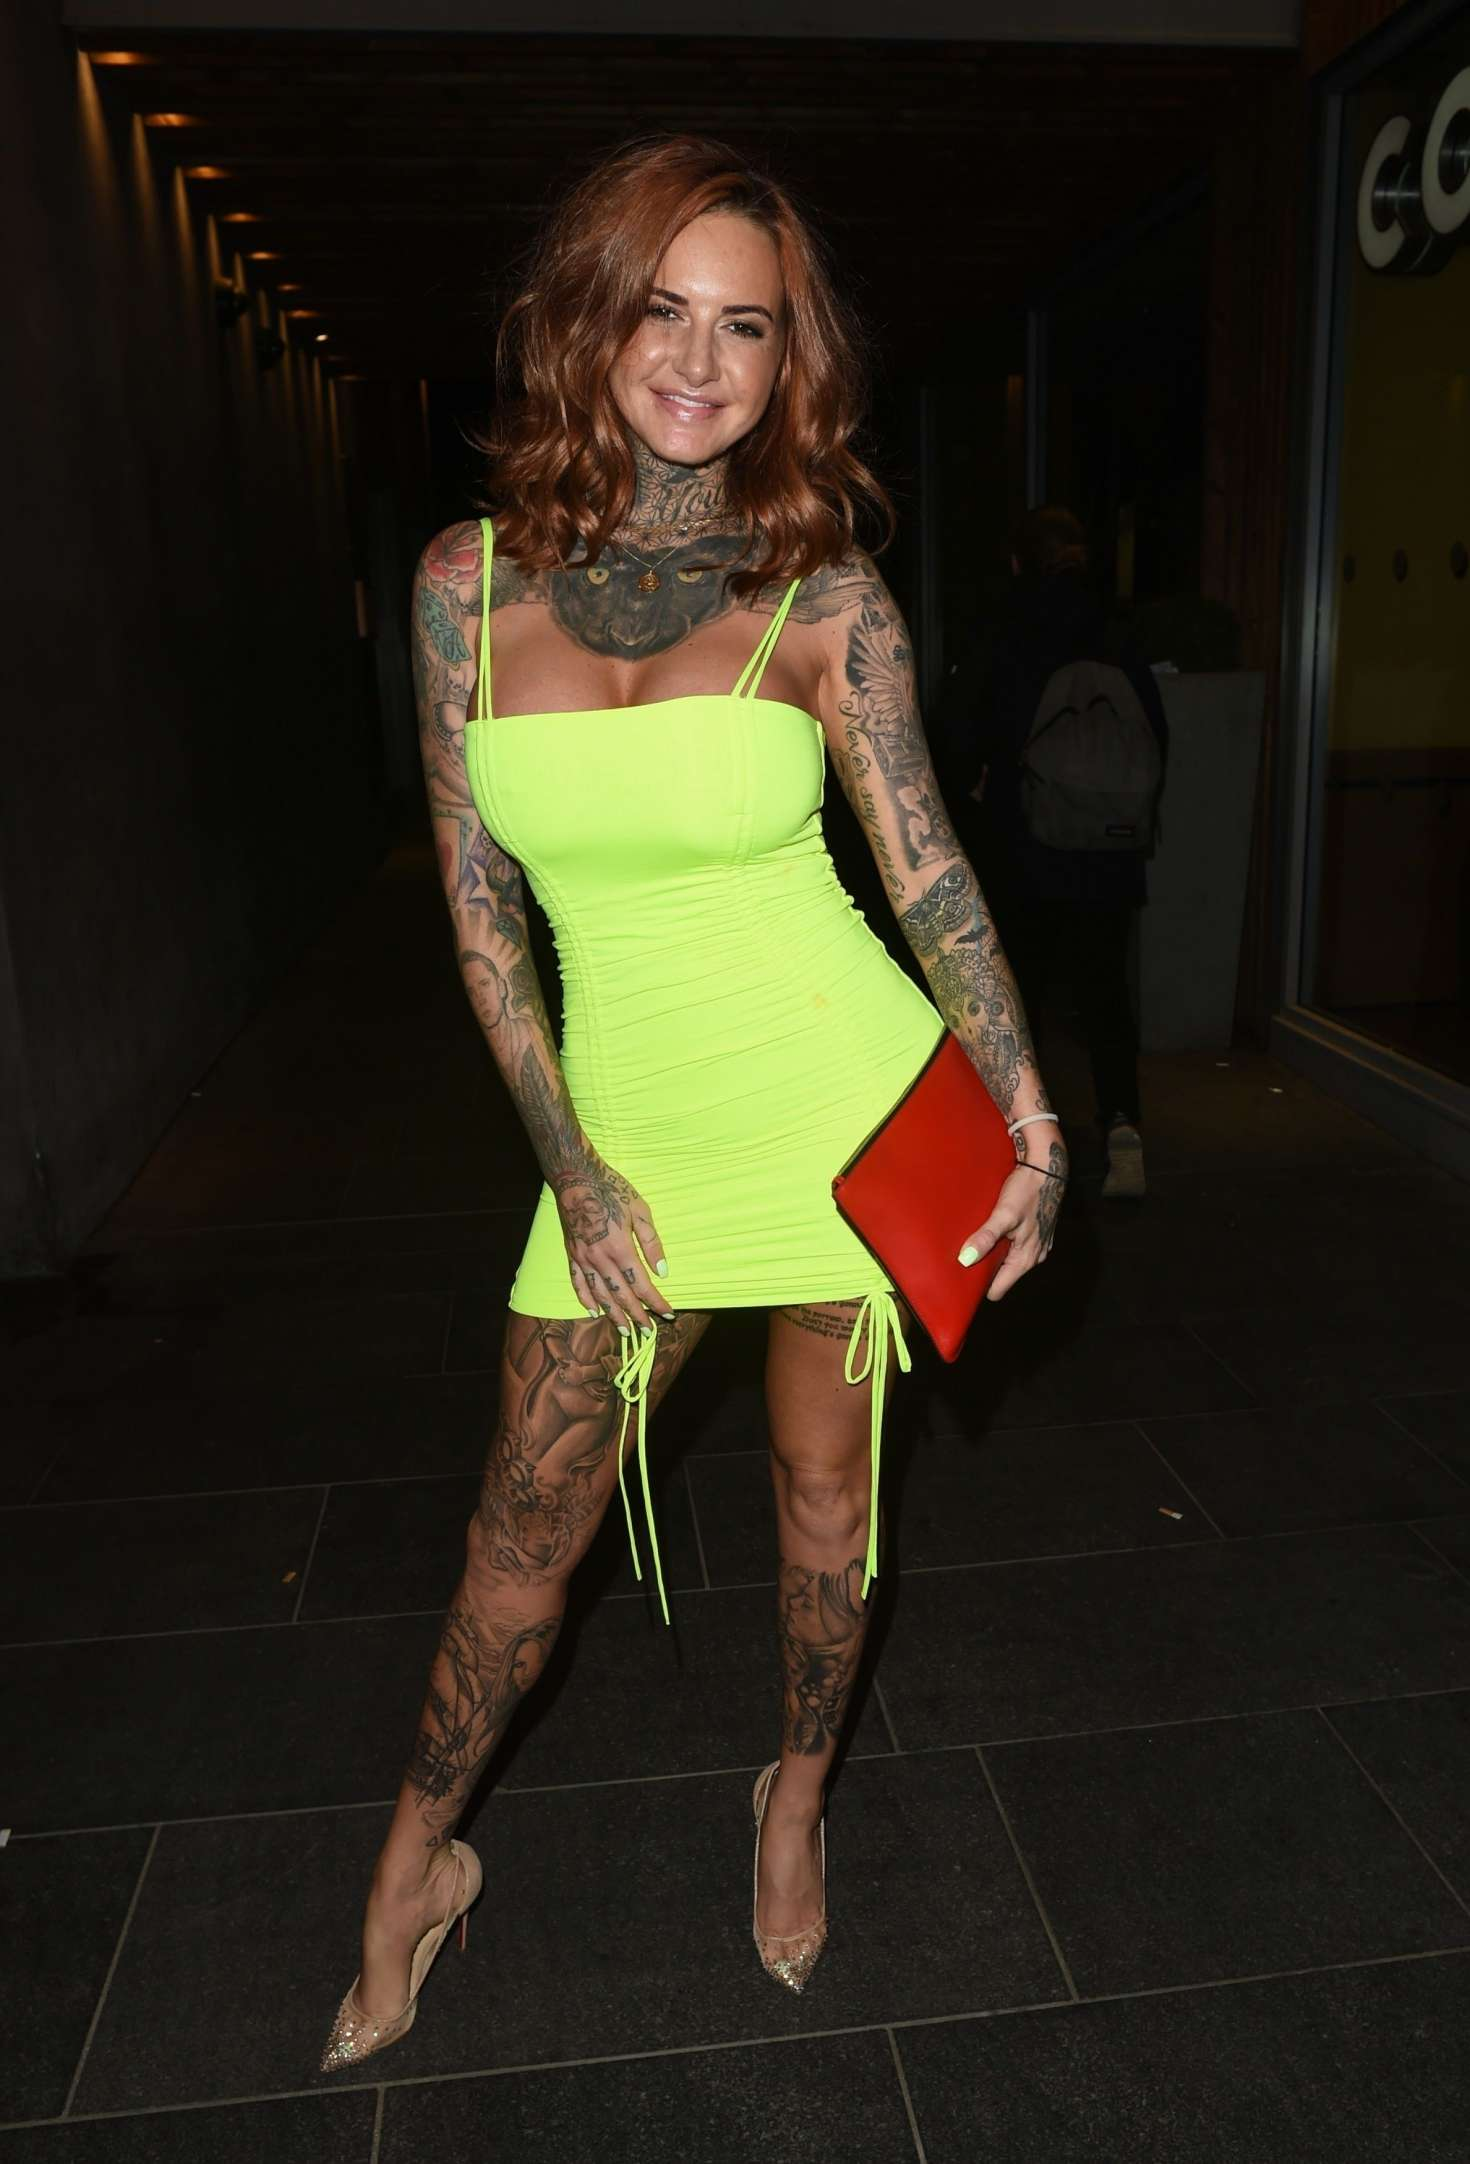 Images Jemma Lucy nudes (37 photo), Pussy, Fappening, Selfie, underwear 2017